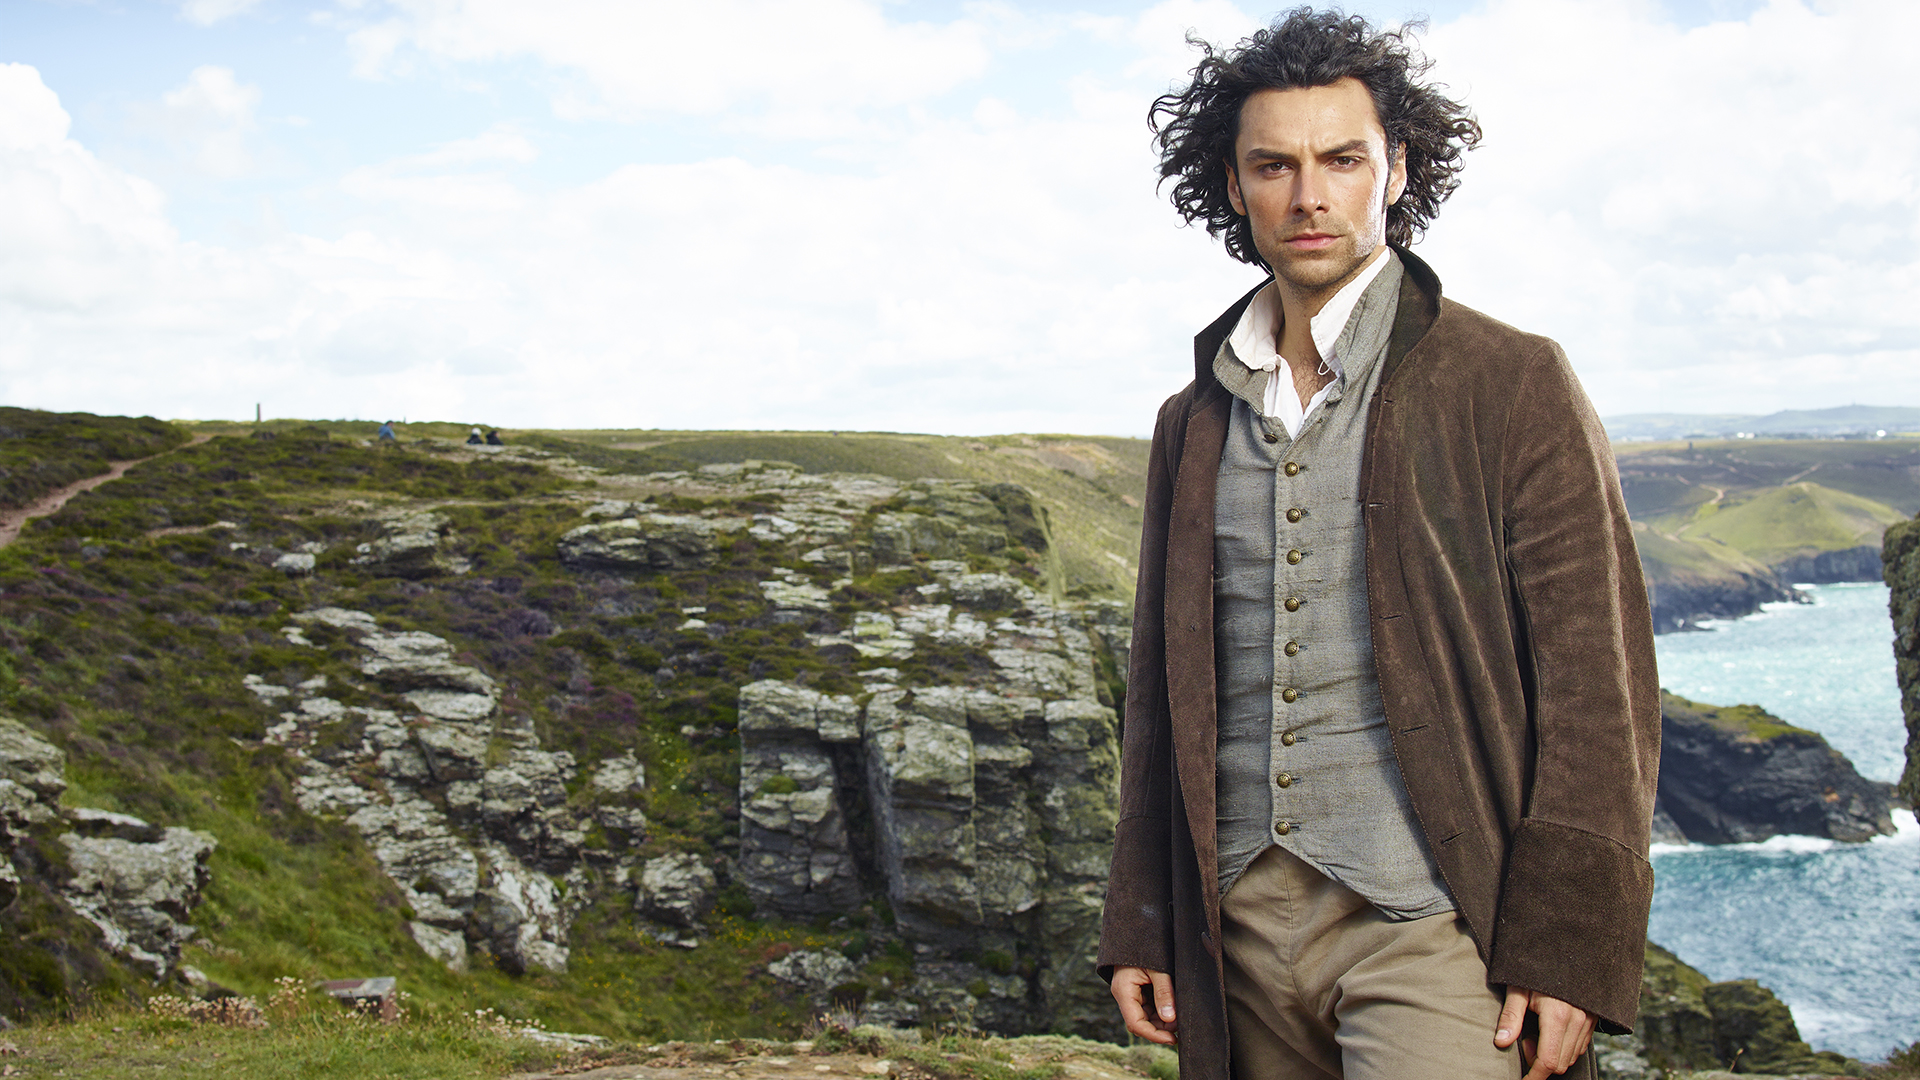 aidan turner facebookaidan turner gif, aidan turner vk, aidan turner gif hunt, aidan turner 2017, aidan turner height, aidan turner and eleanor tomlinson, aidan turner facebook, aidan turner james bond, aidan turner 2016, aidan turner interview, aidan turner sarah greene, aidan turner poldark, aidan turner mother, aidan turner listal, aidan turner official page, aidan turner smile, aidan turner site, aidan turner family, aidan turner young, aidan turner dancing